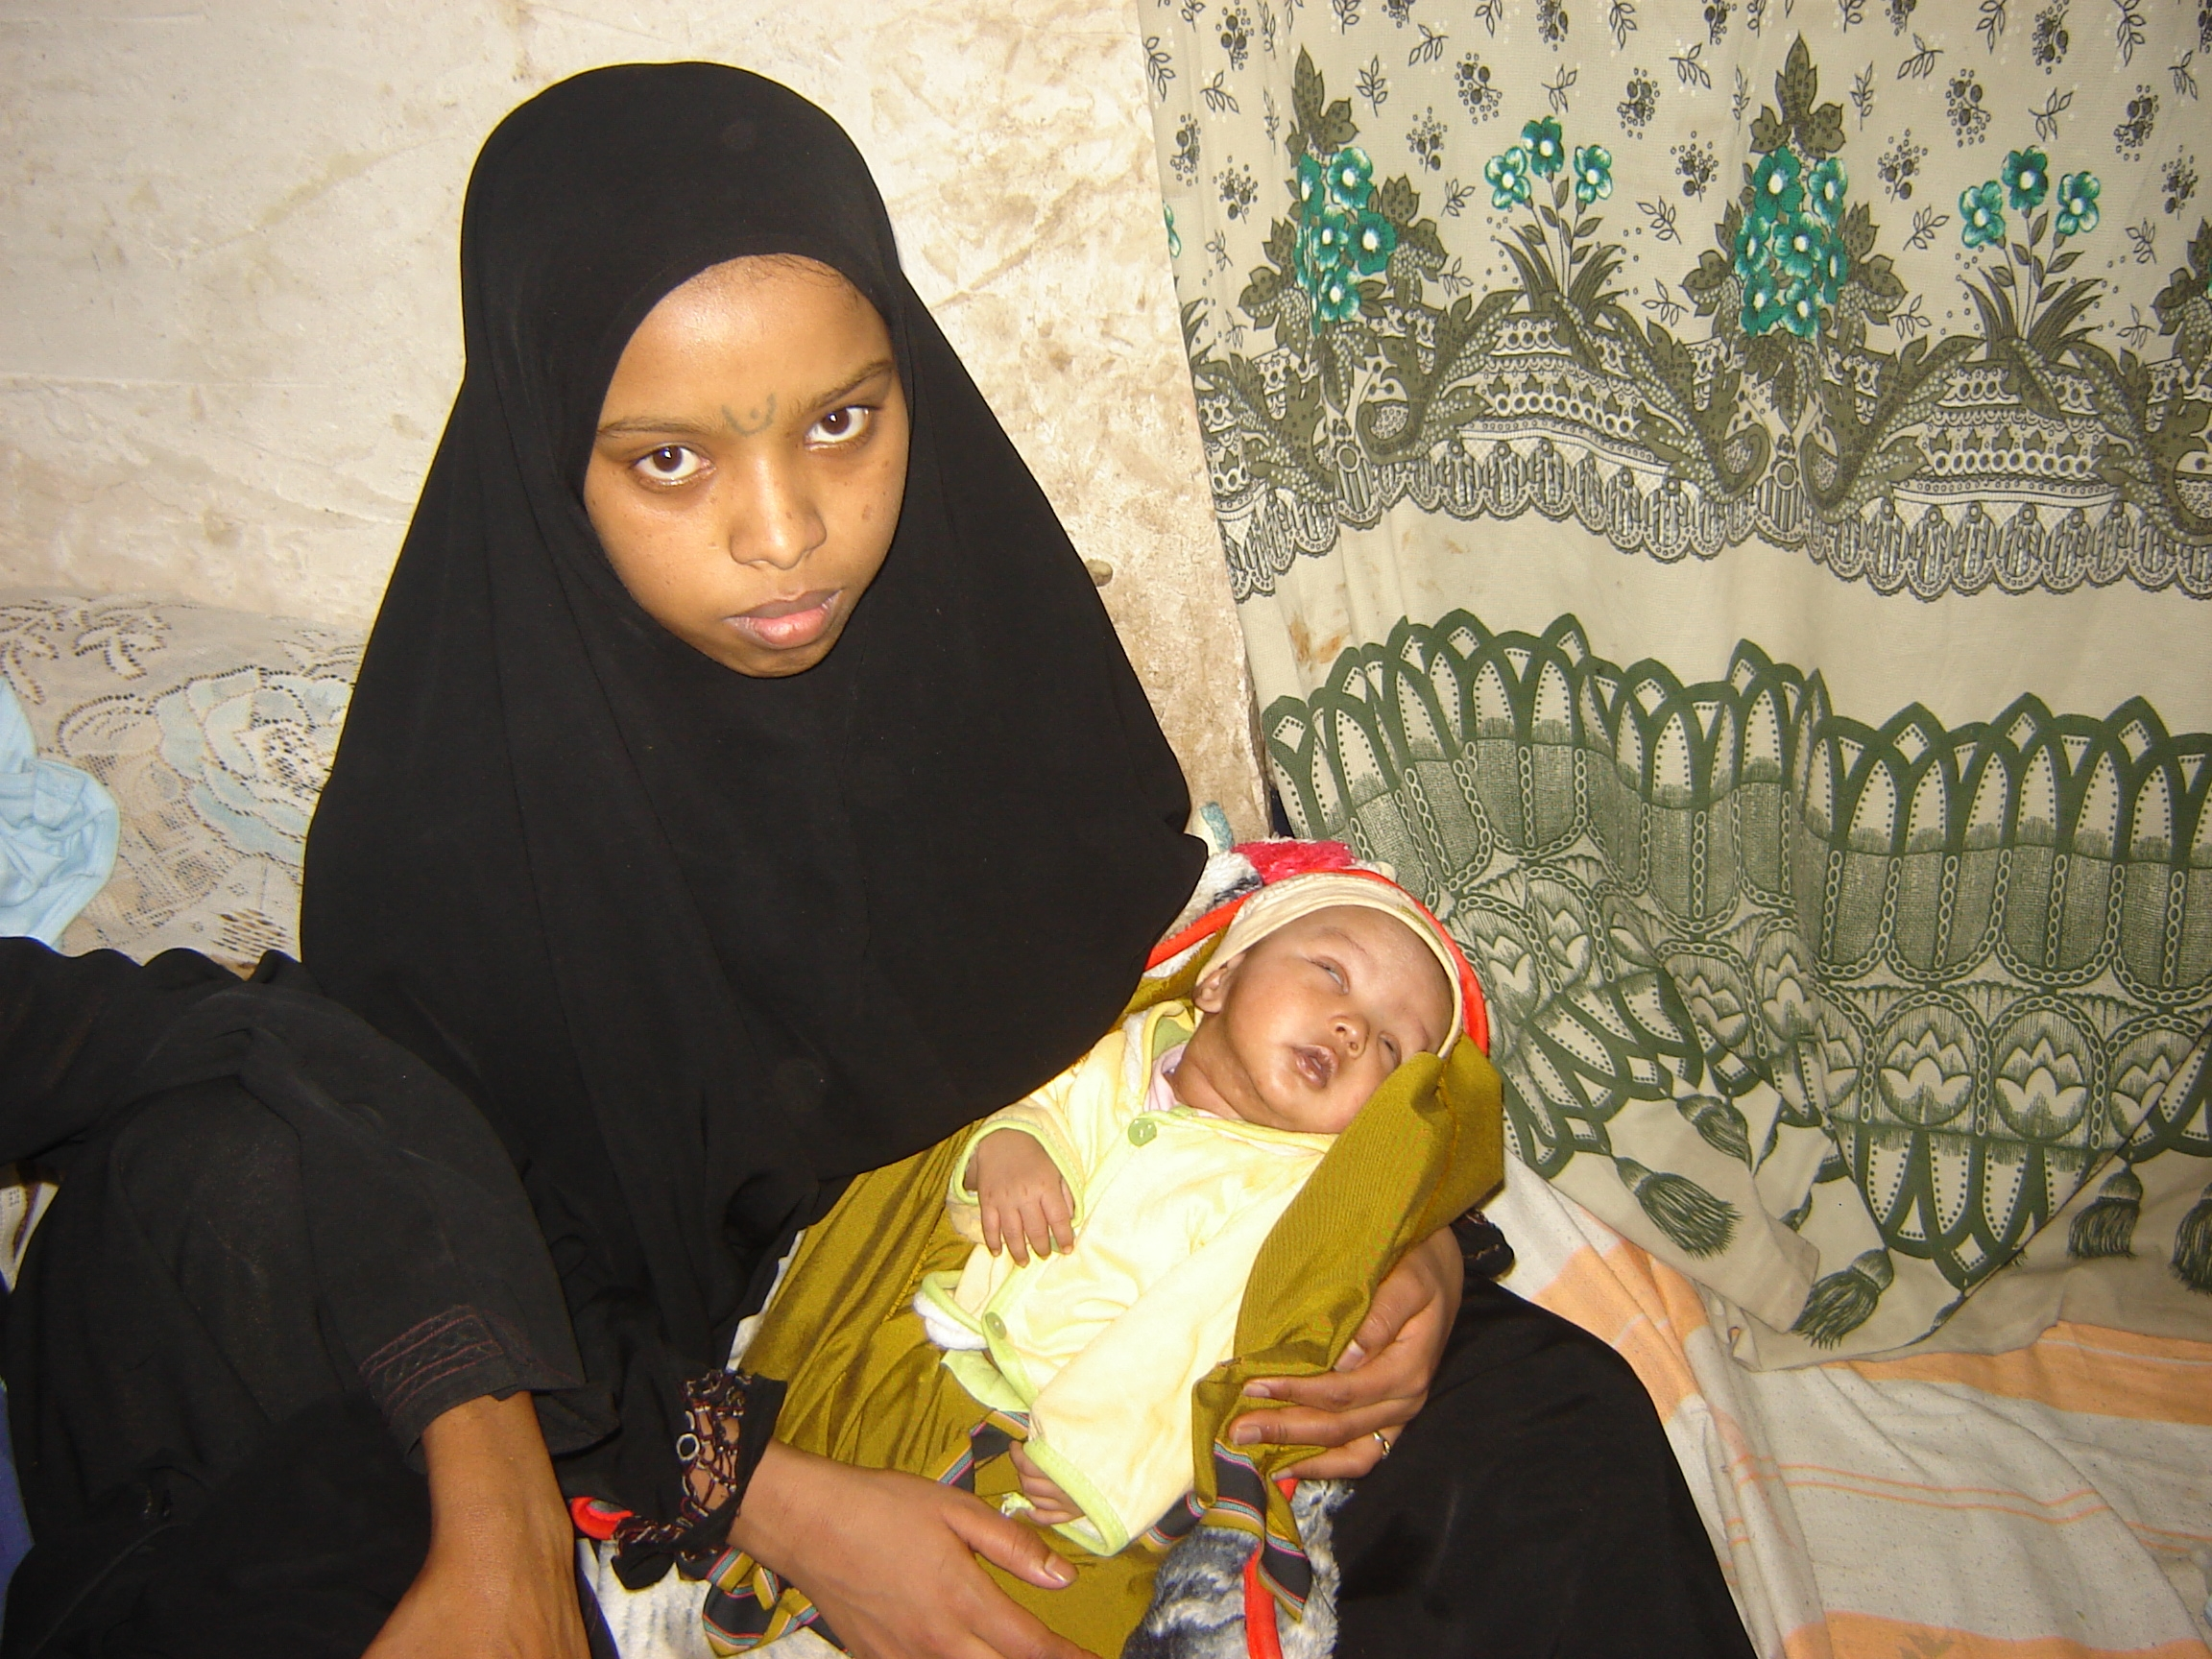 An Oromo woman with her baby